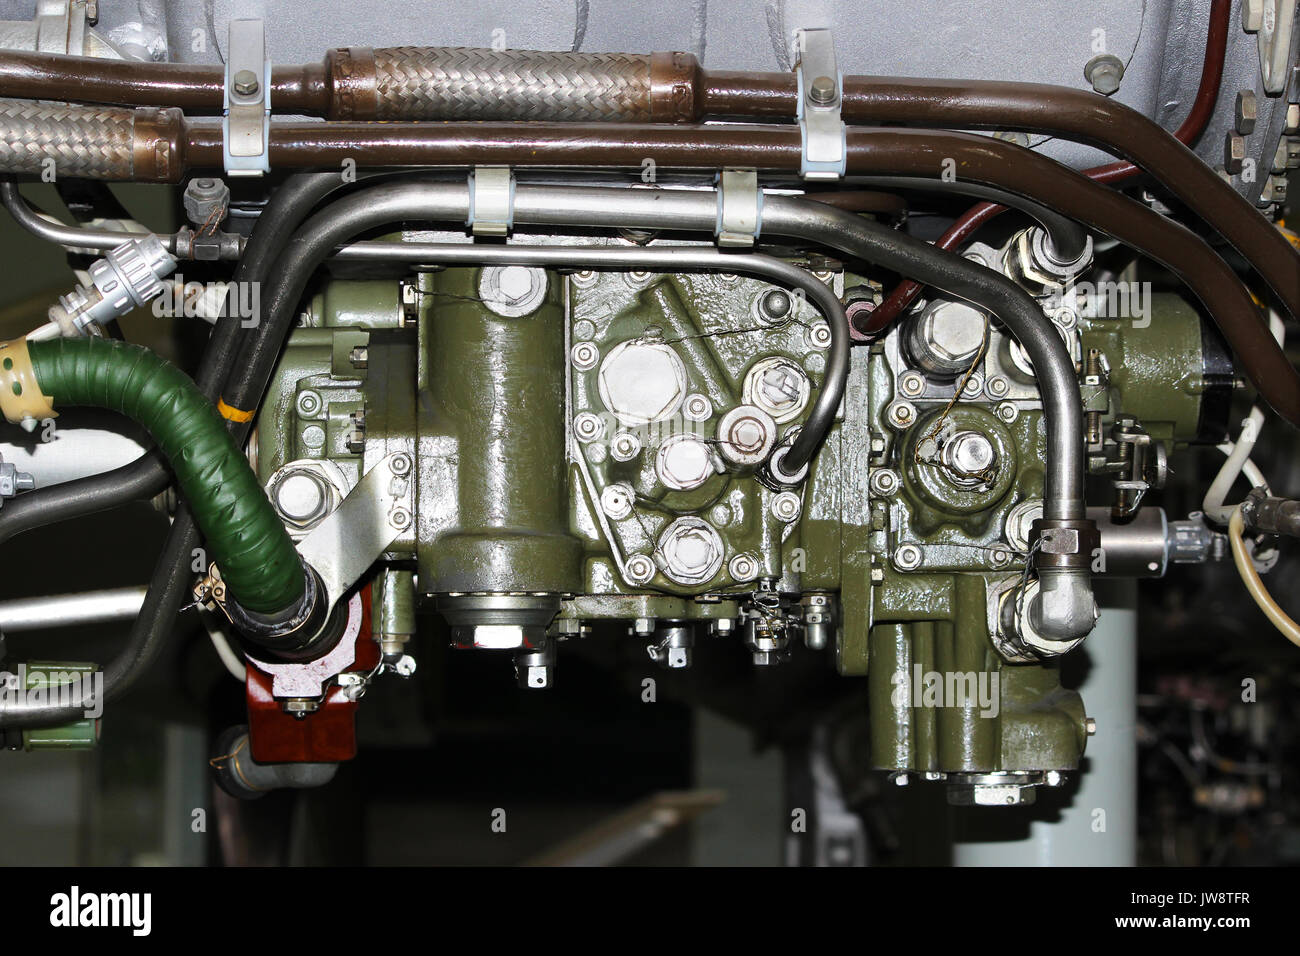 the internal structure of the aircraft engine, army aviation, military aircraft and aerospace industry - Stock Image